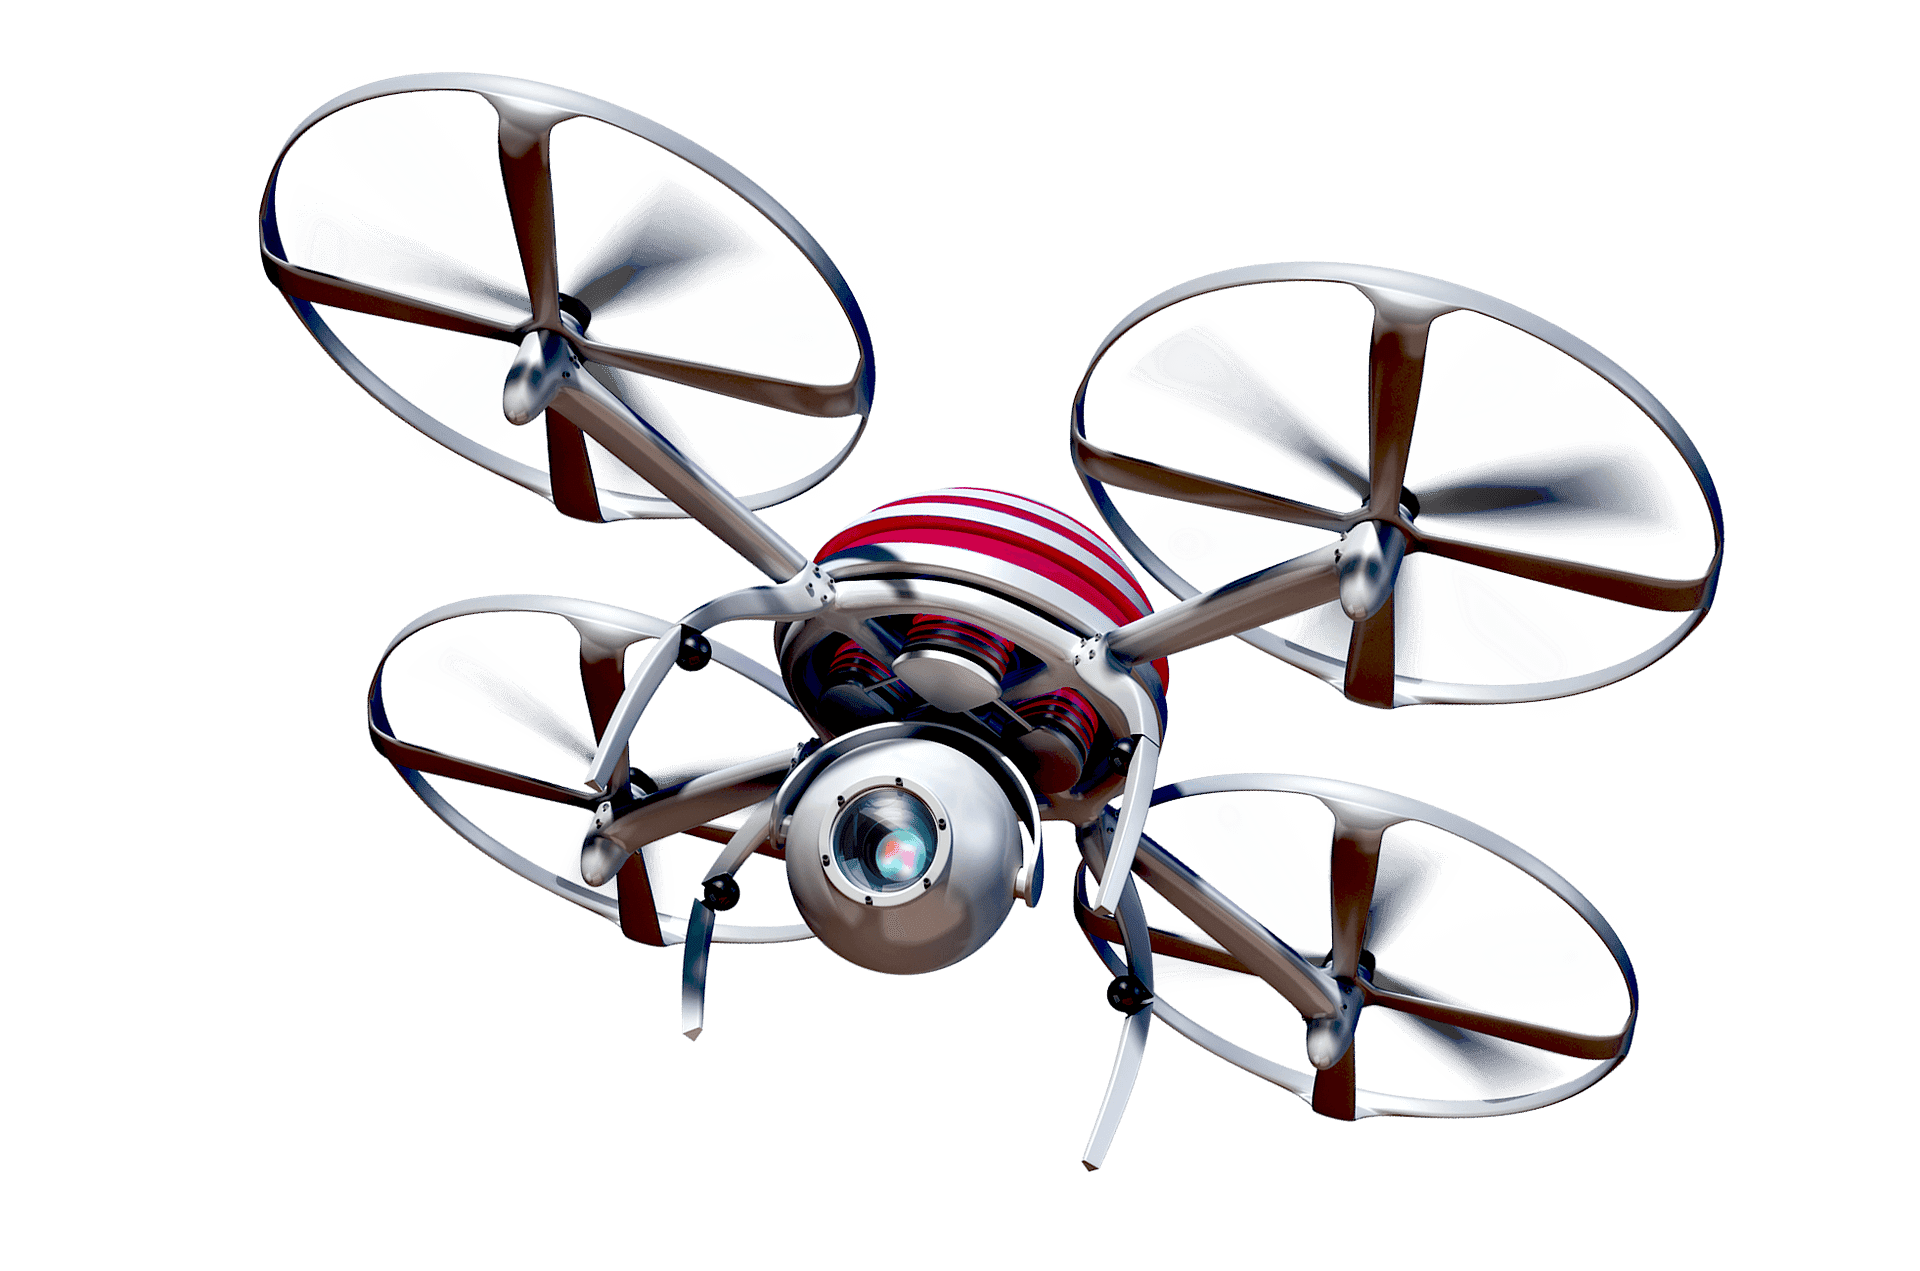 content/tr-tr/images/repository/isc/2020/a-spy-drone-with-large-camera-lens.png